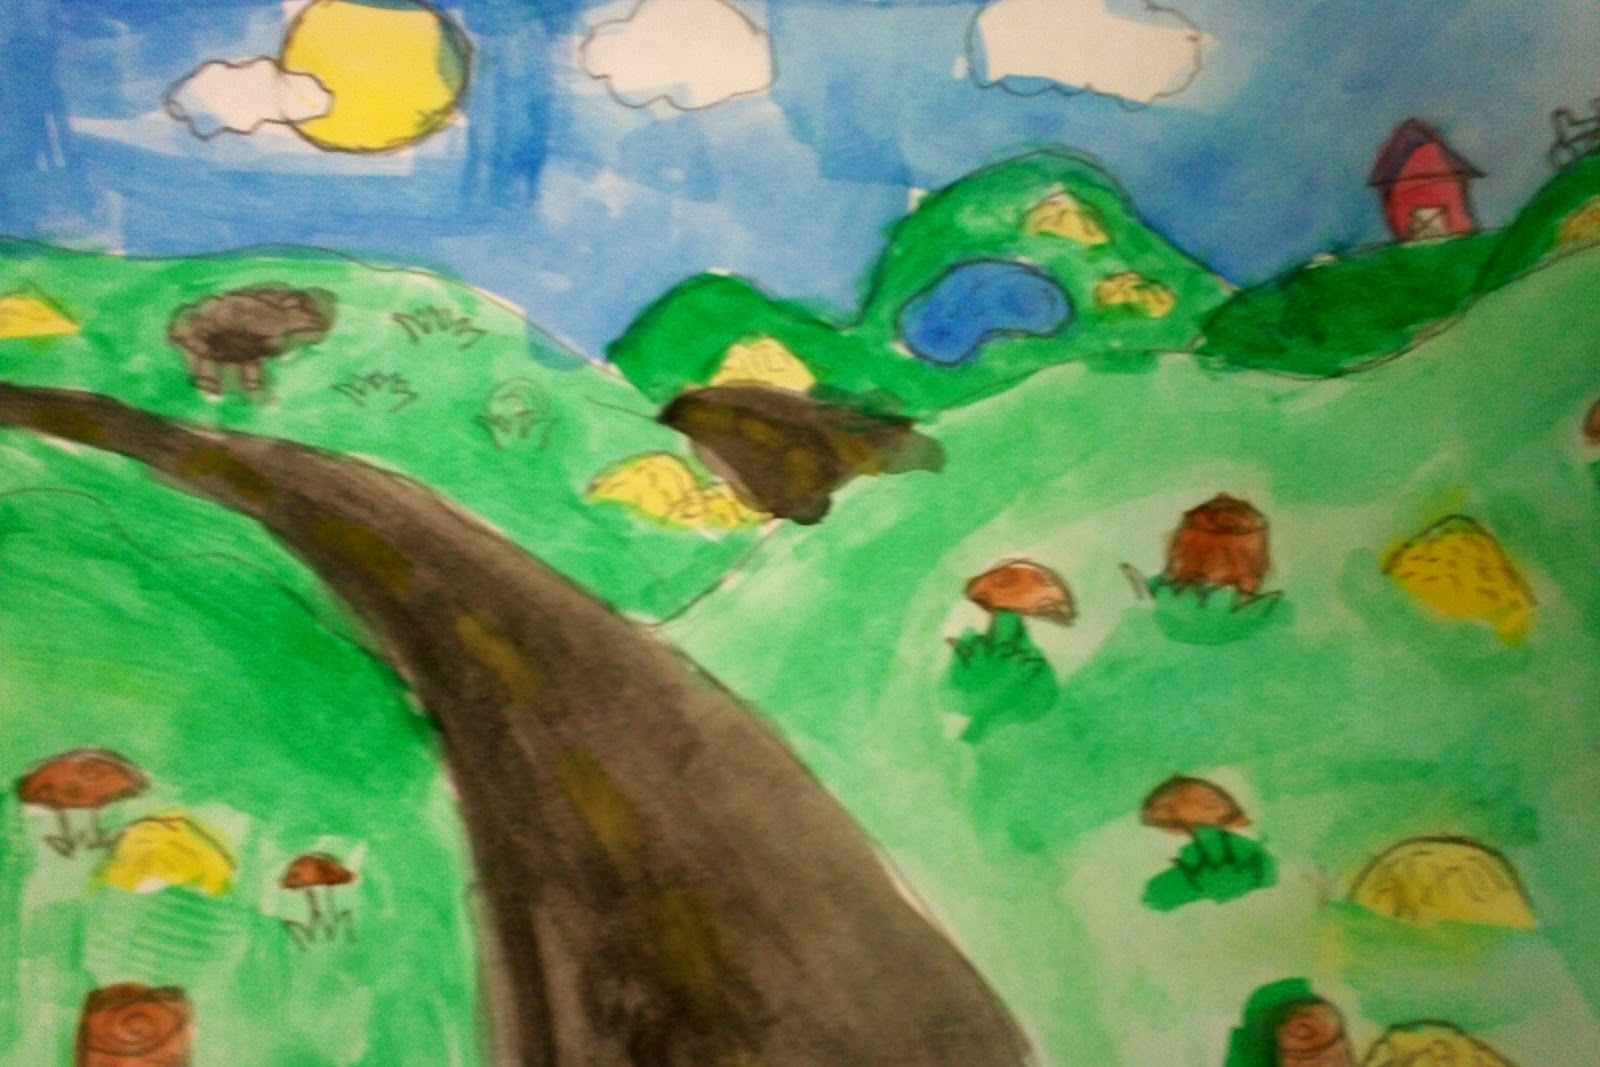 Sept+12+007  Th Grade Art Landscape on science clipart, crystal gems rocks, painting effects, projects easy crafts, salvador elementary, lessons flowers,